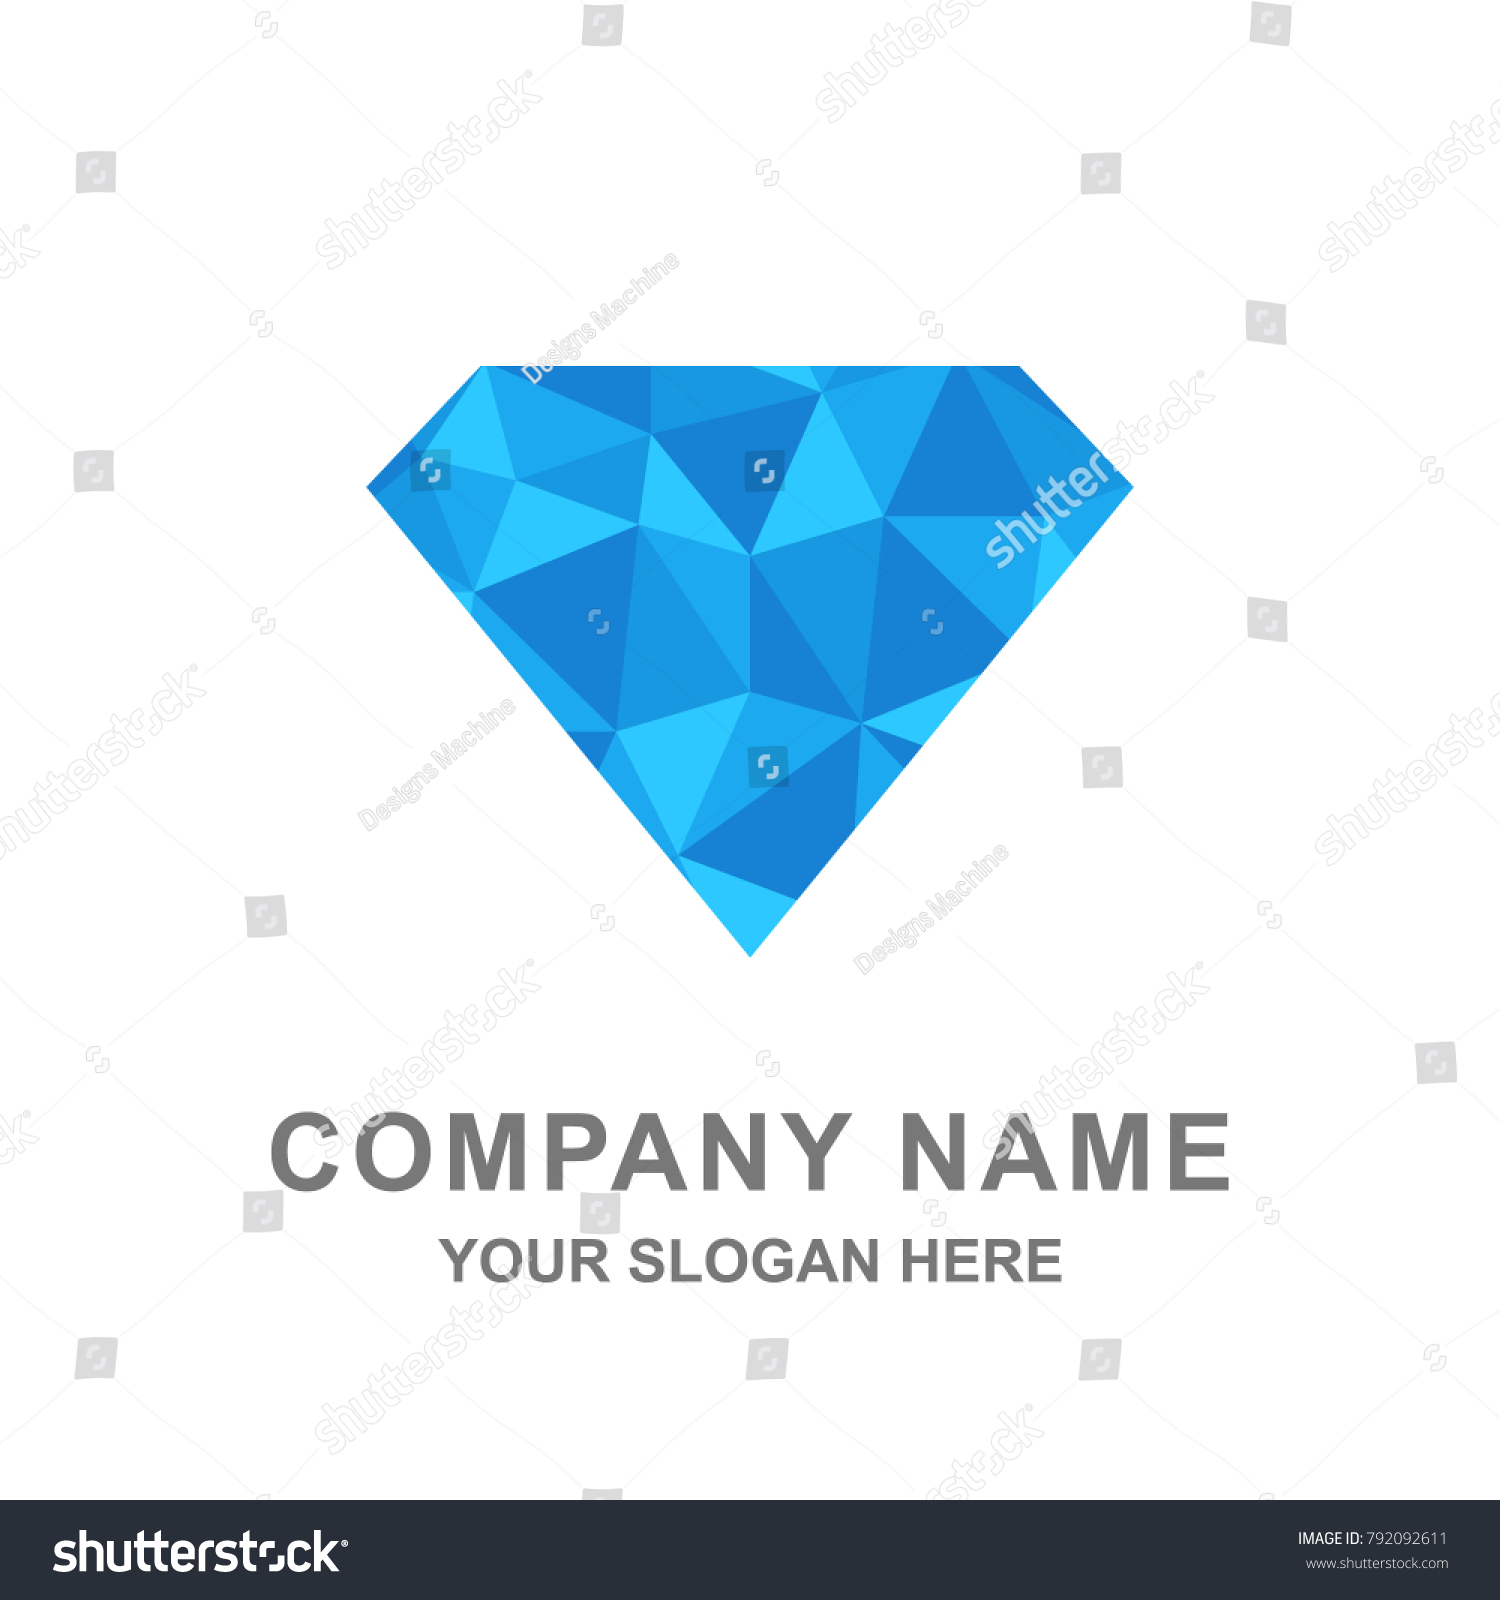 watch logo diamond design photoshop polygon youtube tutorial